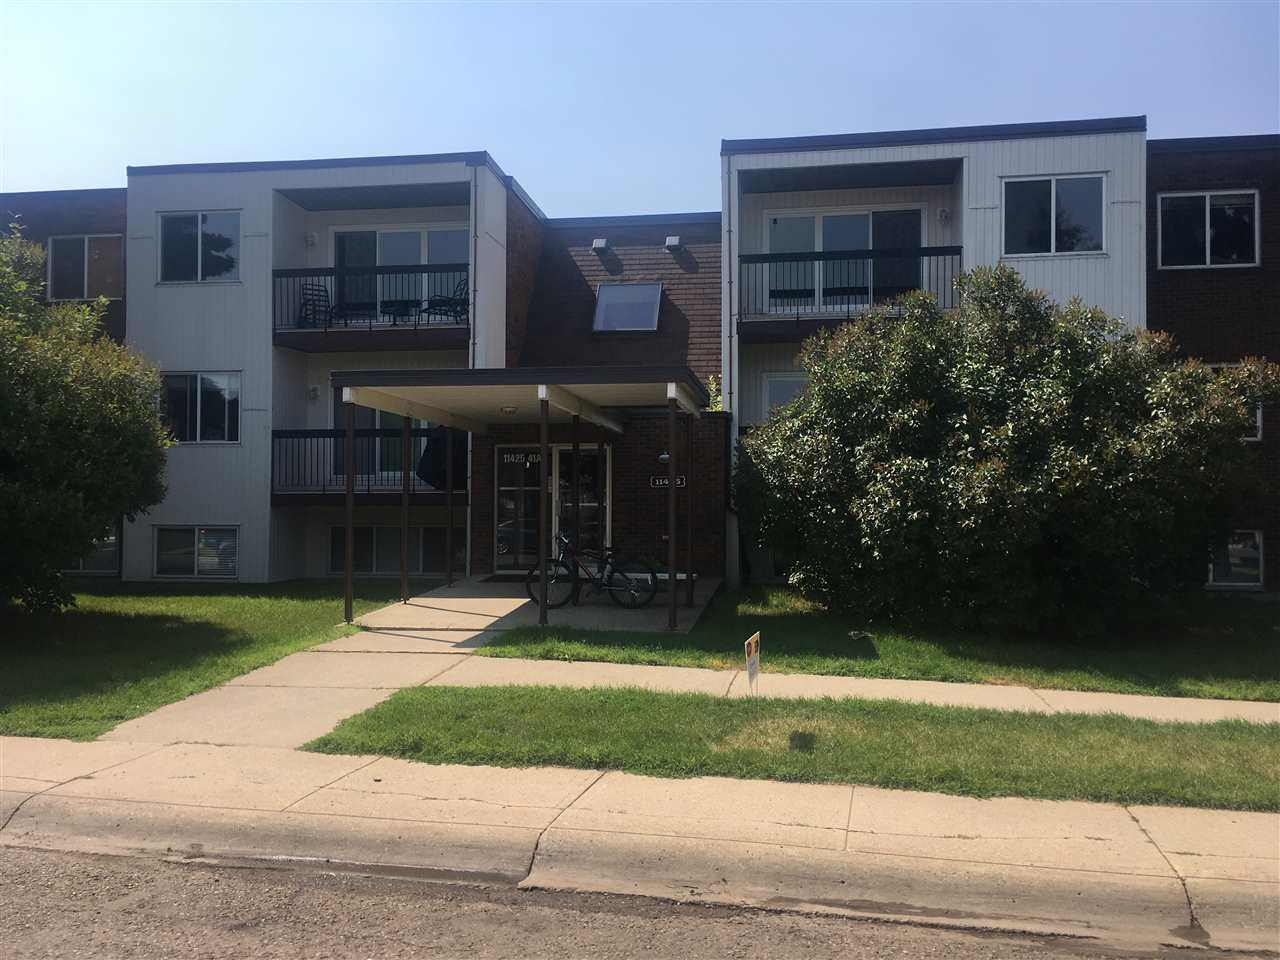 203 11425 41 Avenue NW, 2 bed, 1 bath, at $169,900